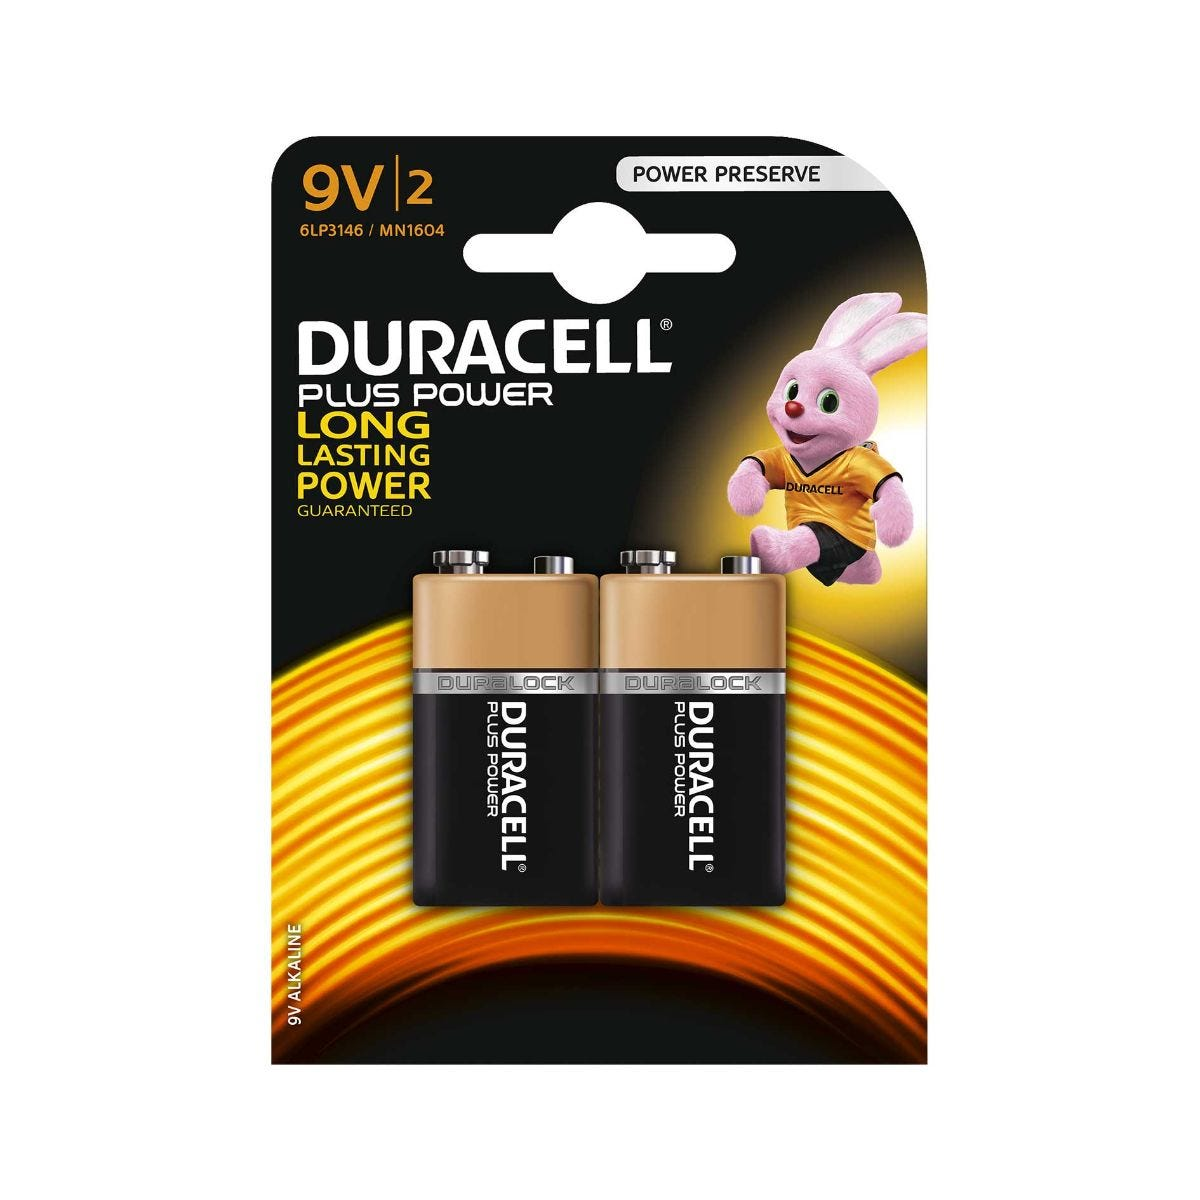 Image of Duracell Duralock Plus Power 9v Pack of 2